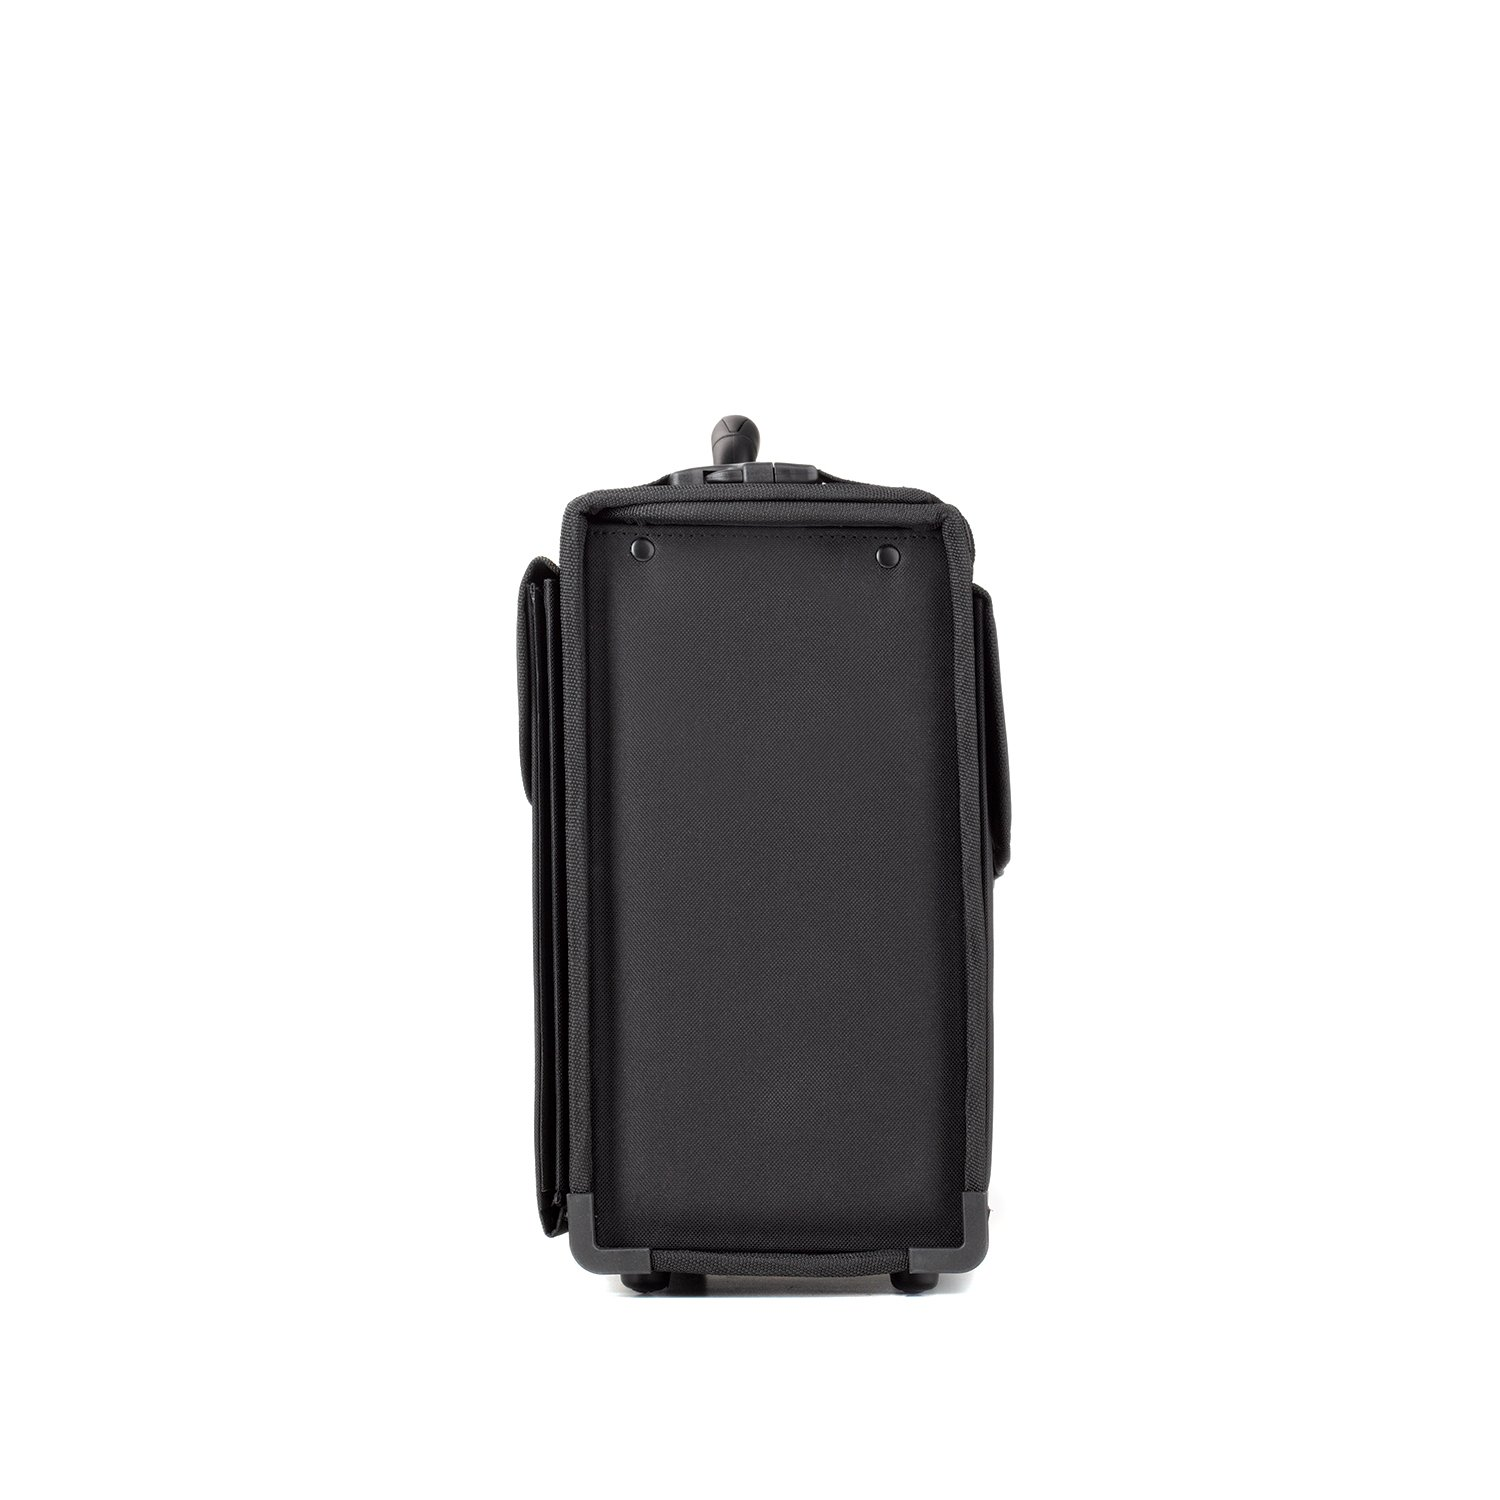 Solo Classic 16 Inch Laptop Catalog Case, Black by SOLO (Image #3)